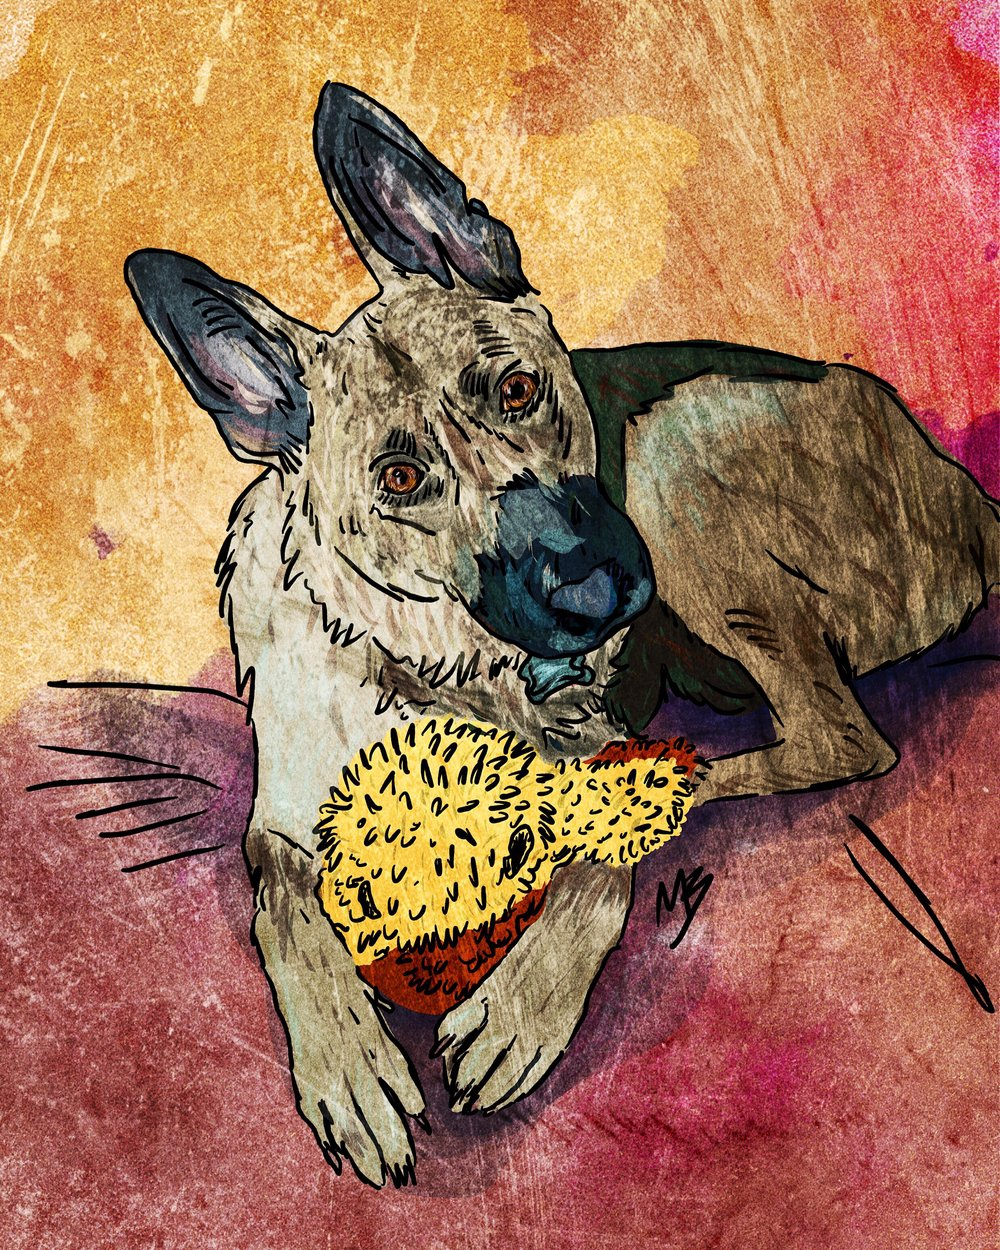 2. Your digital pet portrait created. Woof!